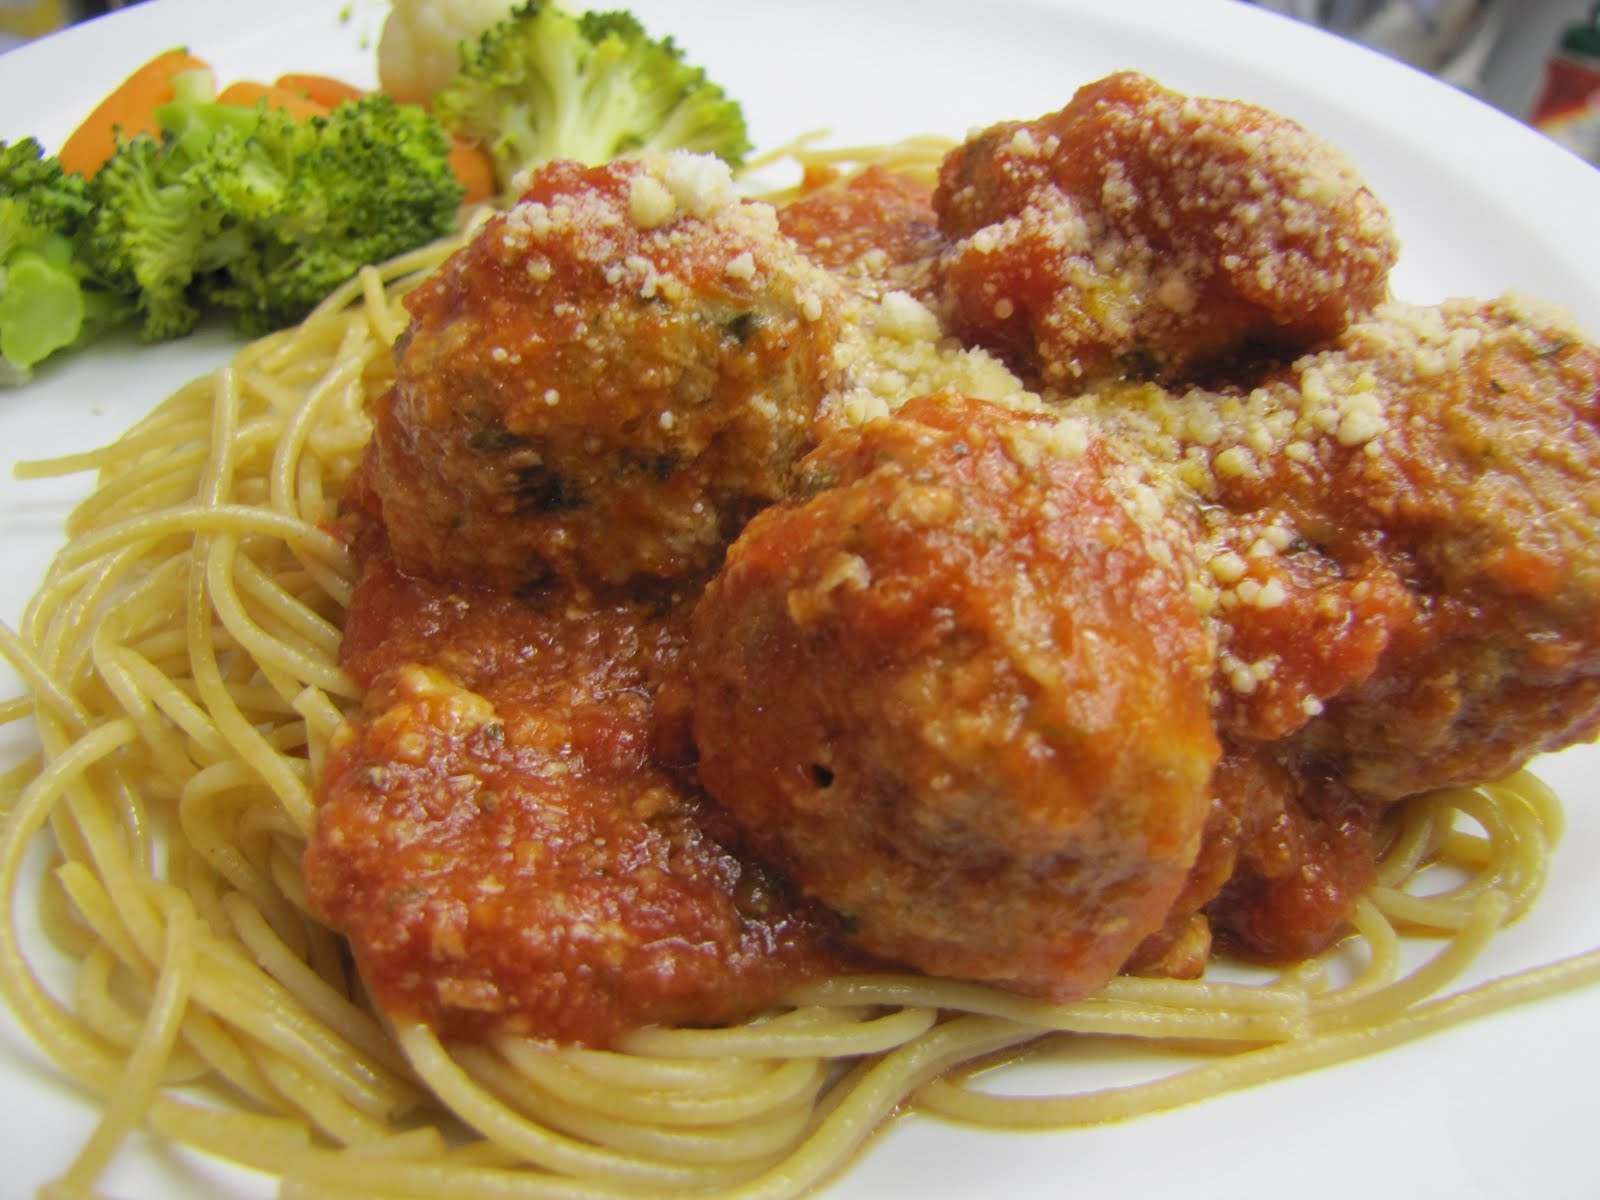 EatYourHeartOut: Crock Pot Italian Turkey Meatballs